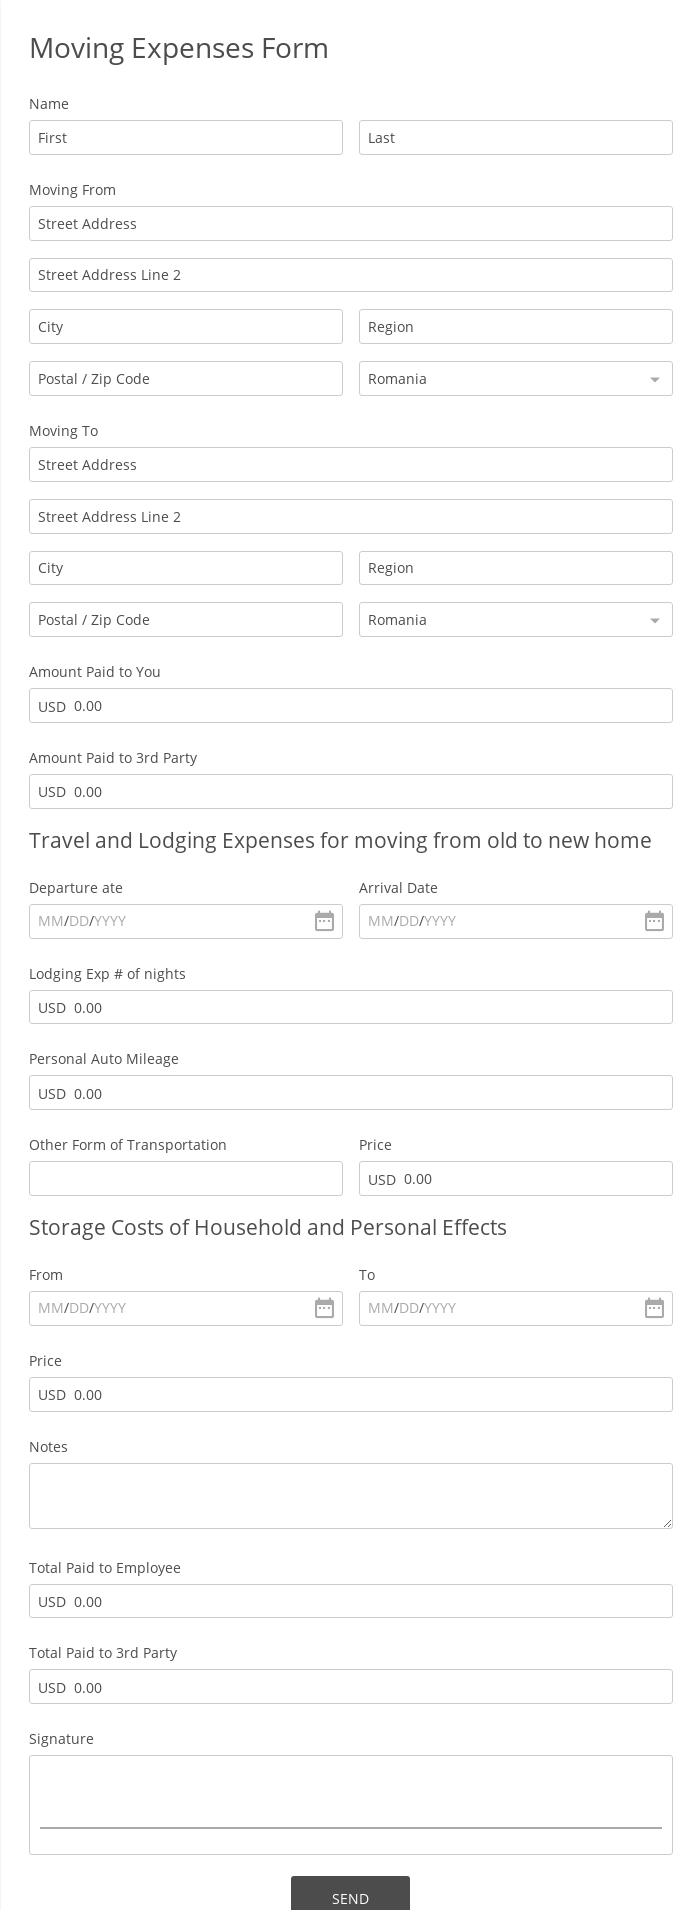 Moving Expenses Form